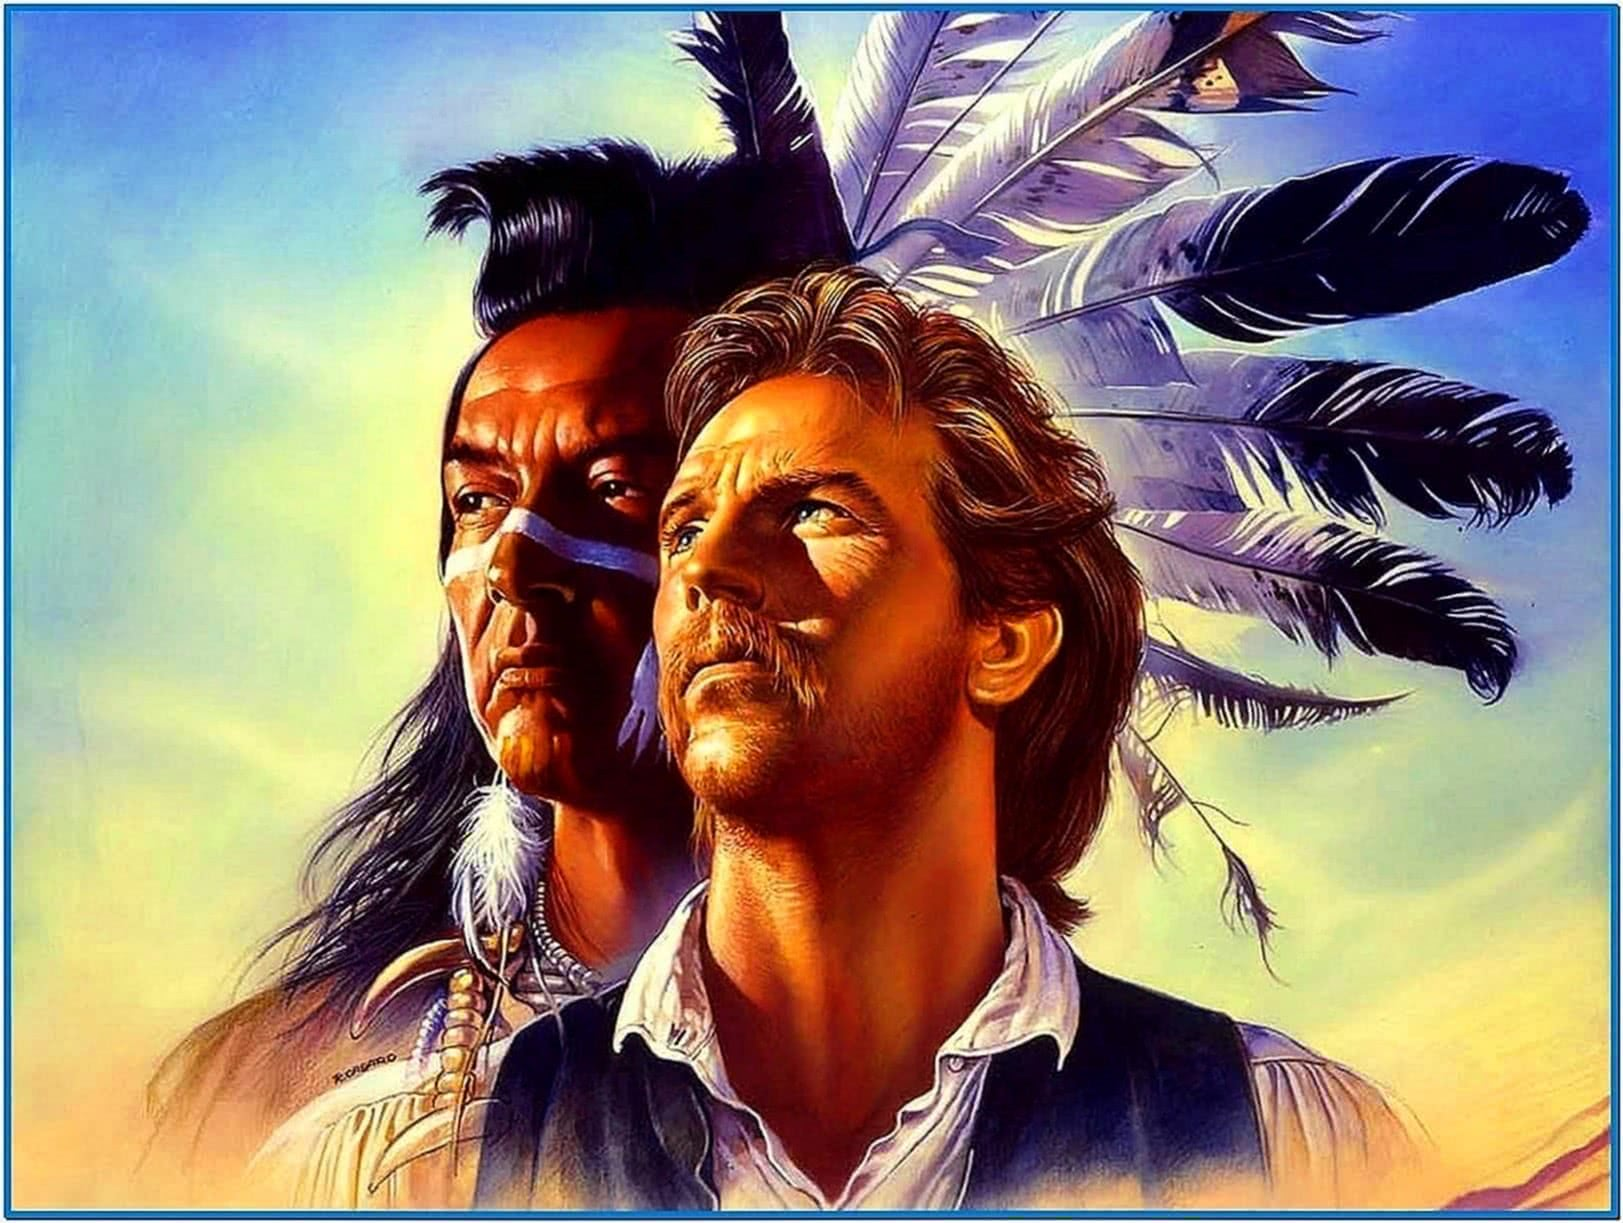 Dances with wolves screensaver